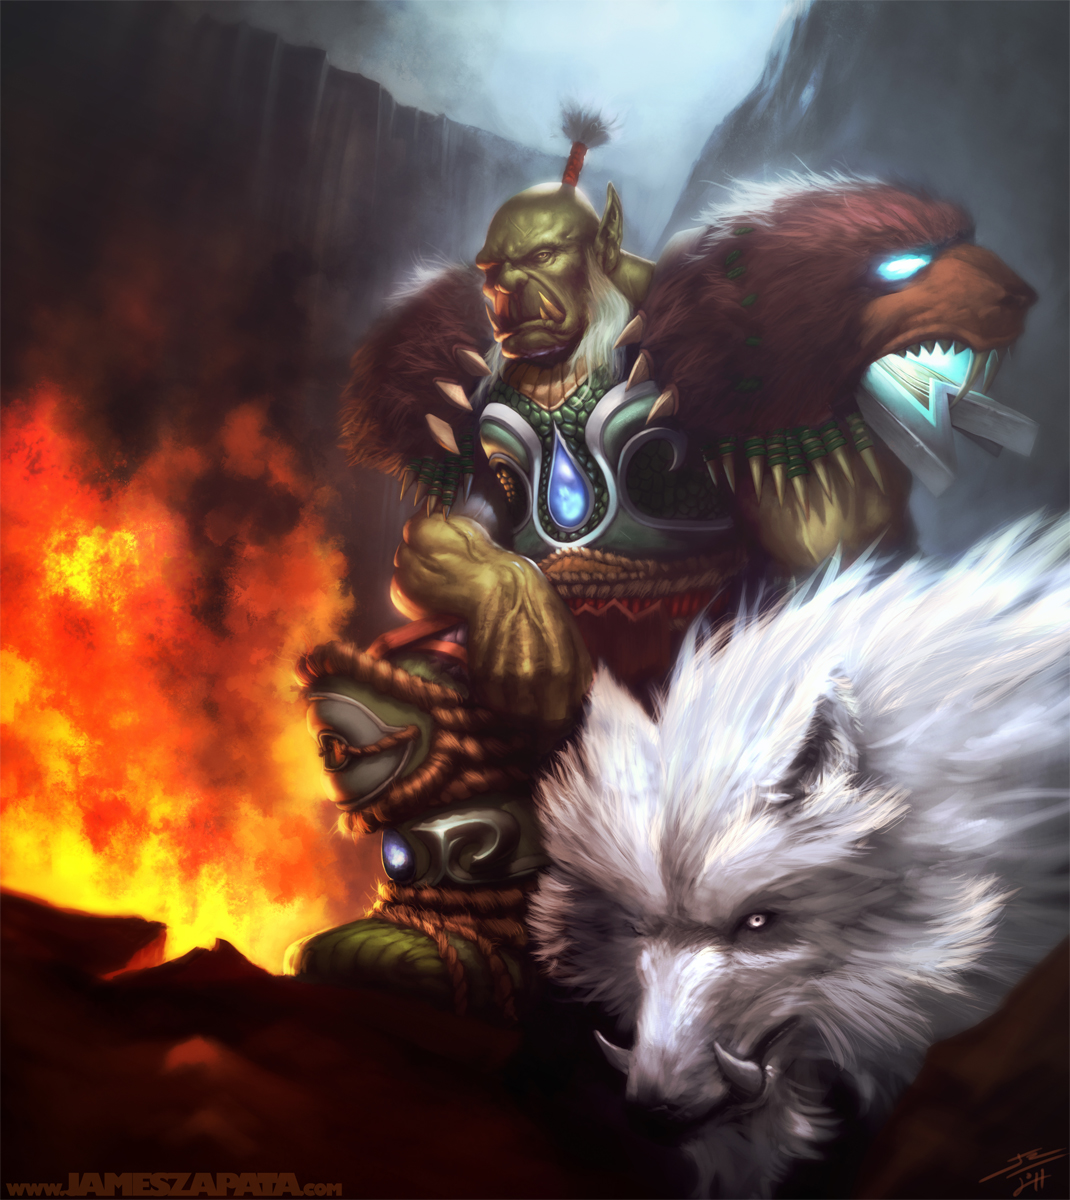 WoW - Orc Hunter by jameszapata on DeviantArt